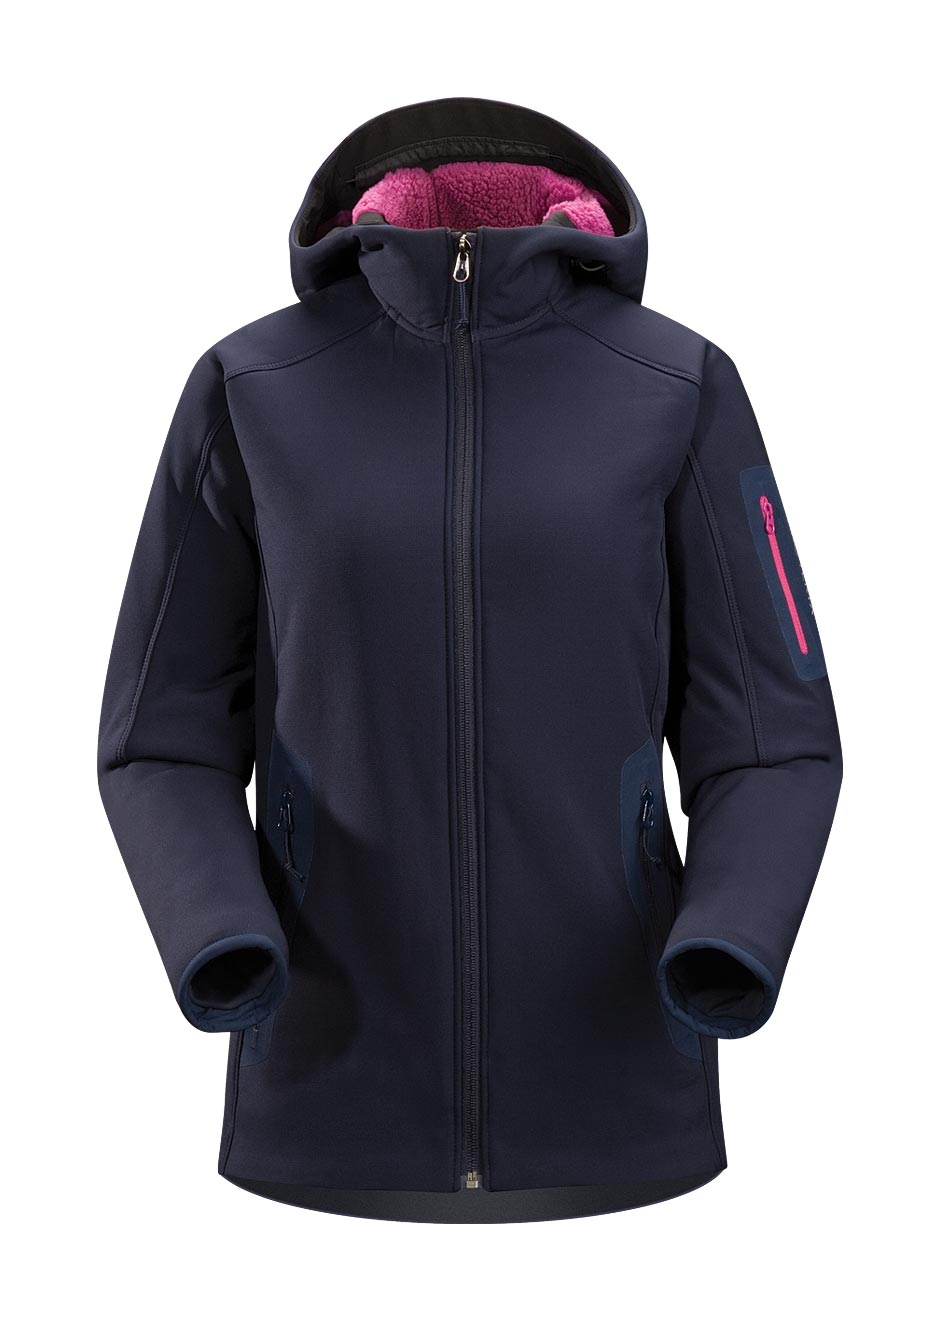 Arcteryx Jackets Women Twilight Firee Hoody